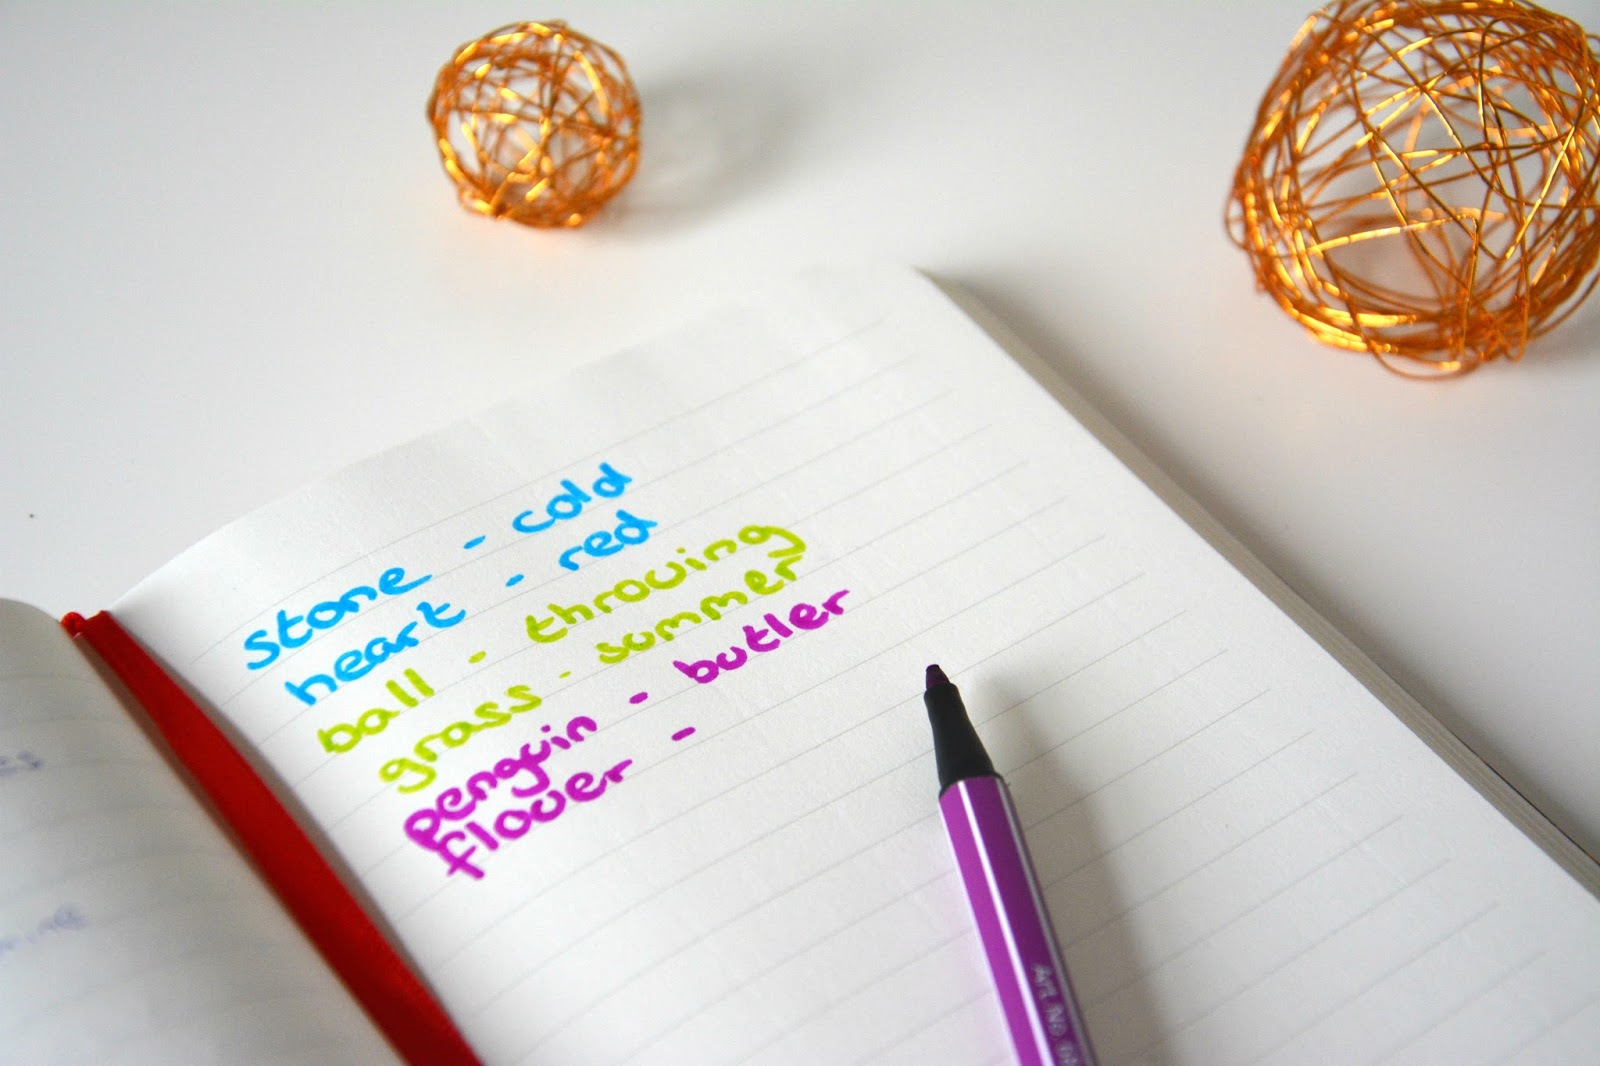 tips for creative writing How can we give constructive creative writing critiques to our peers these tips will help you give more helpful feedback without being hurtful.